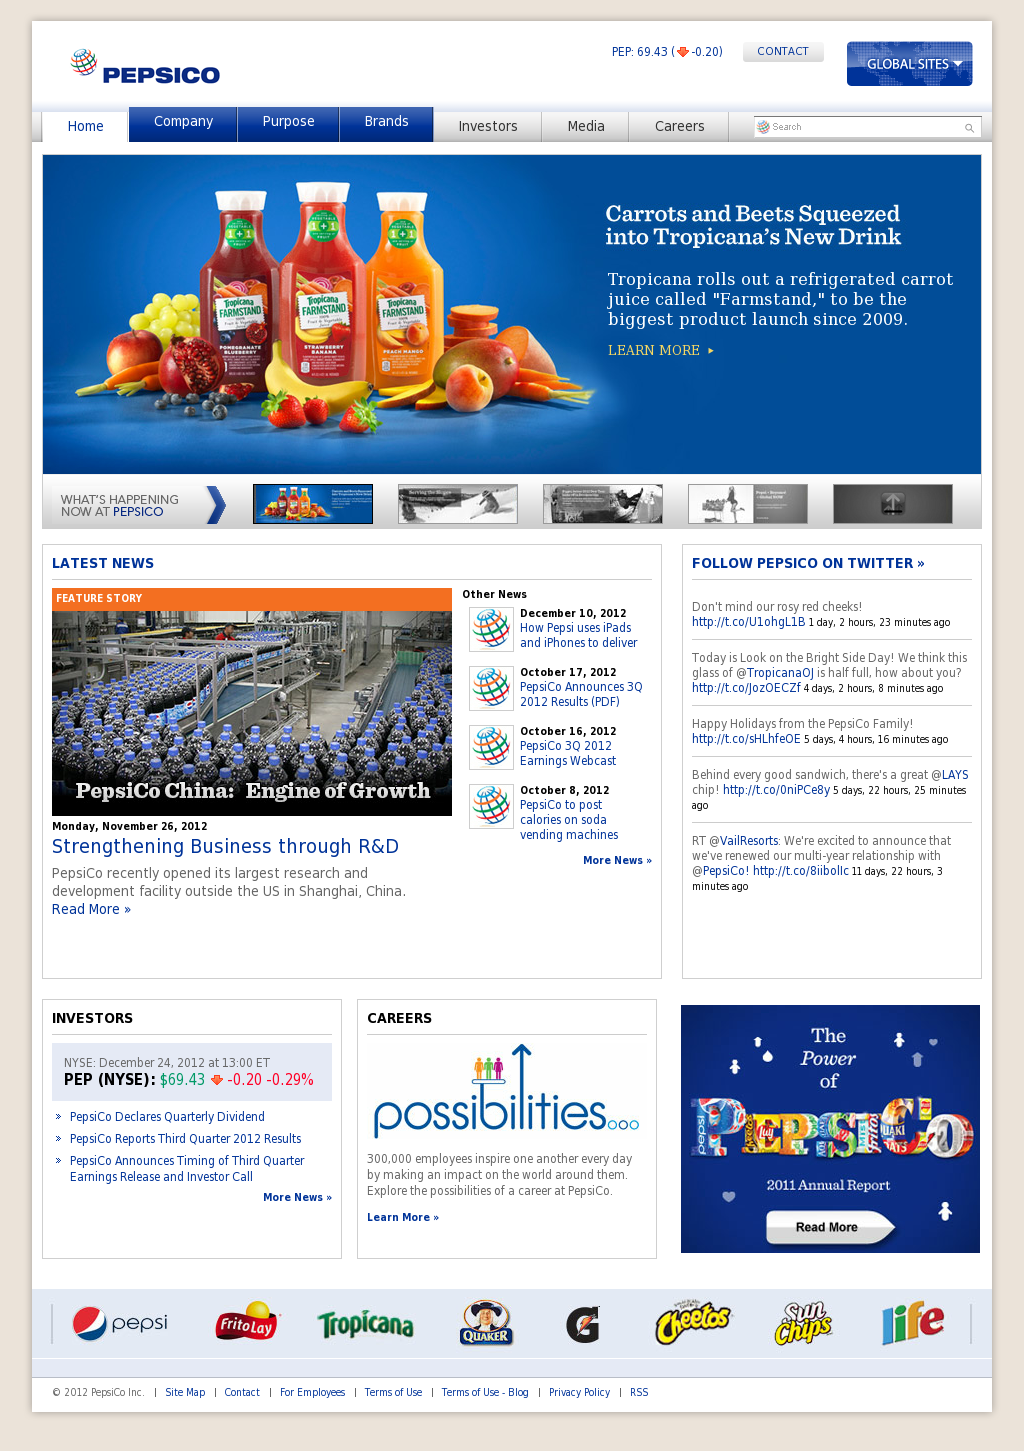 PepsiCo Competitors, Revenue and Employees - Owler Company